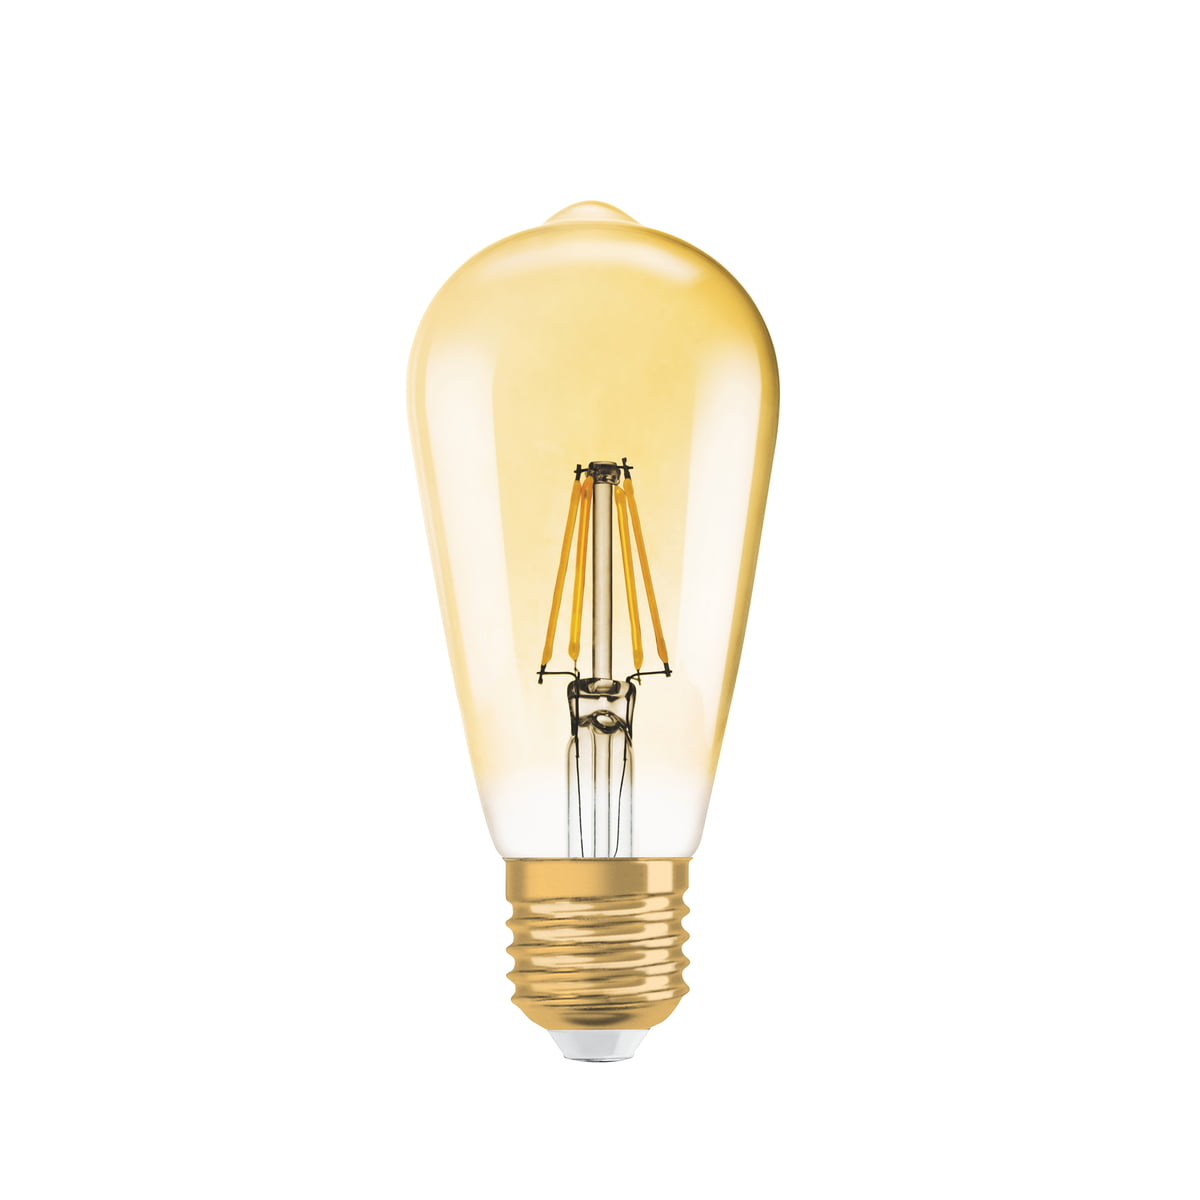 edison products light filament classic led lighting main judy bulb vintage fireworks